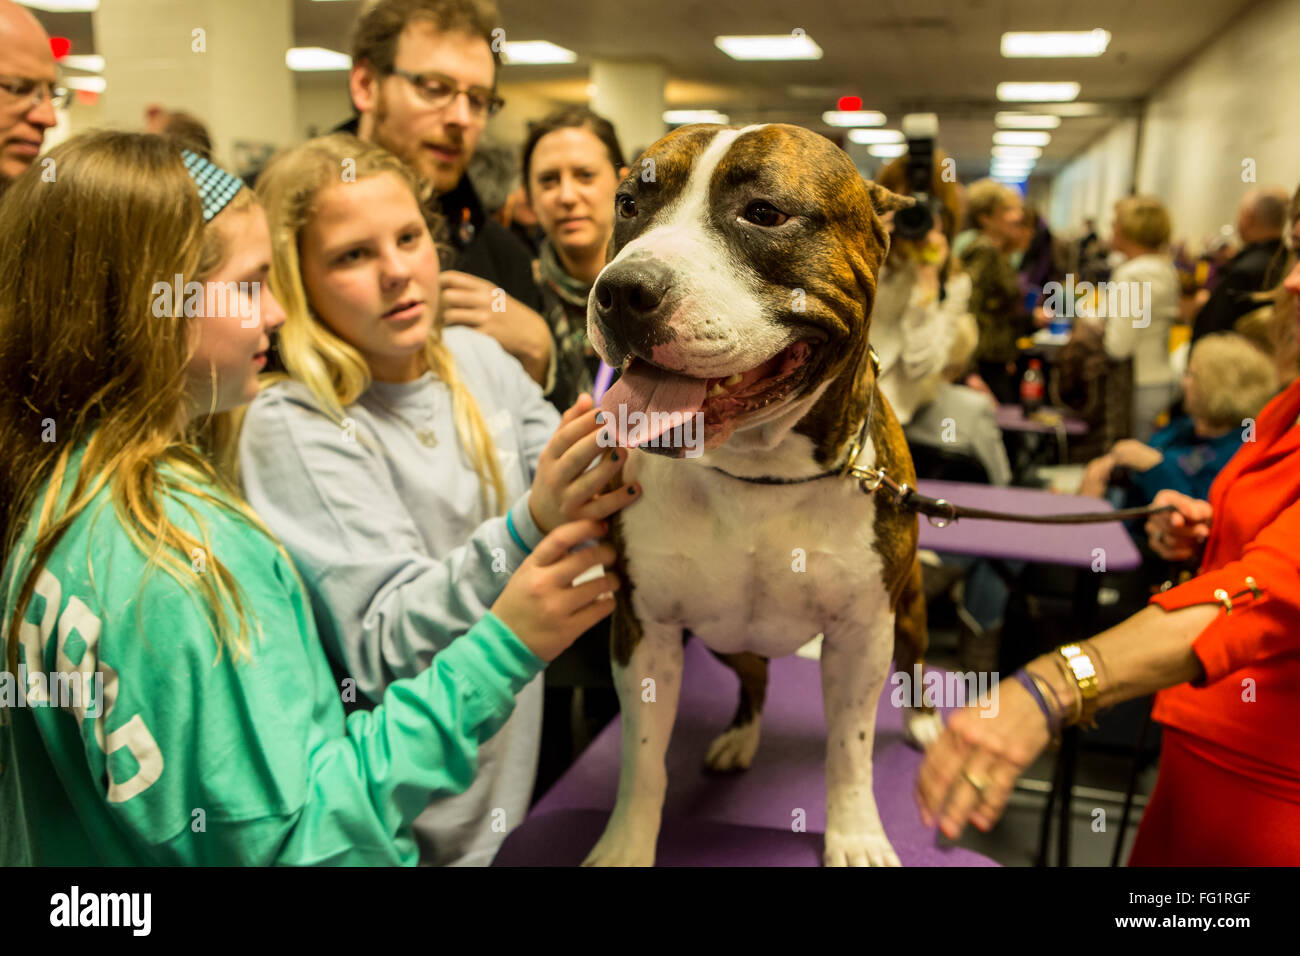 New York, USA. 16th February, 2016. 140th Westminster Kennel Club Dog show in Madison Square Garden Stock Photo